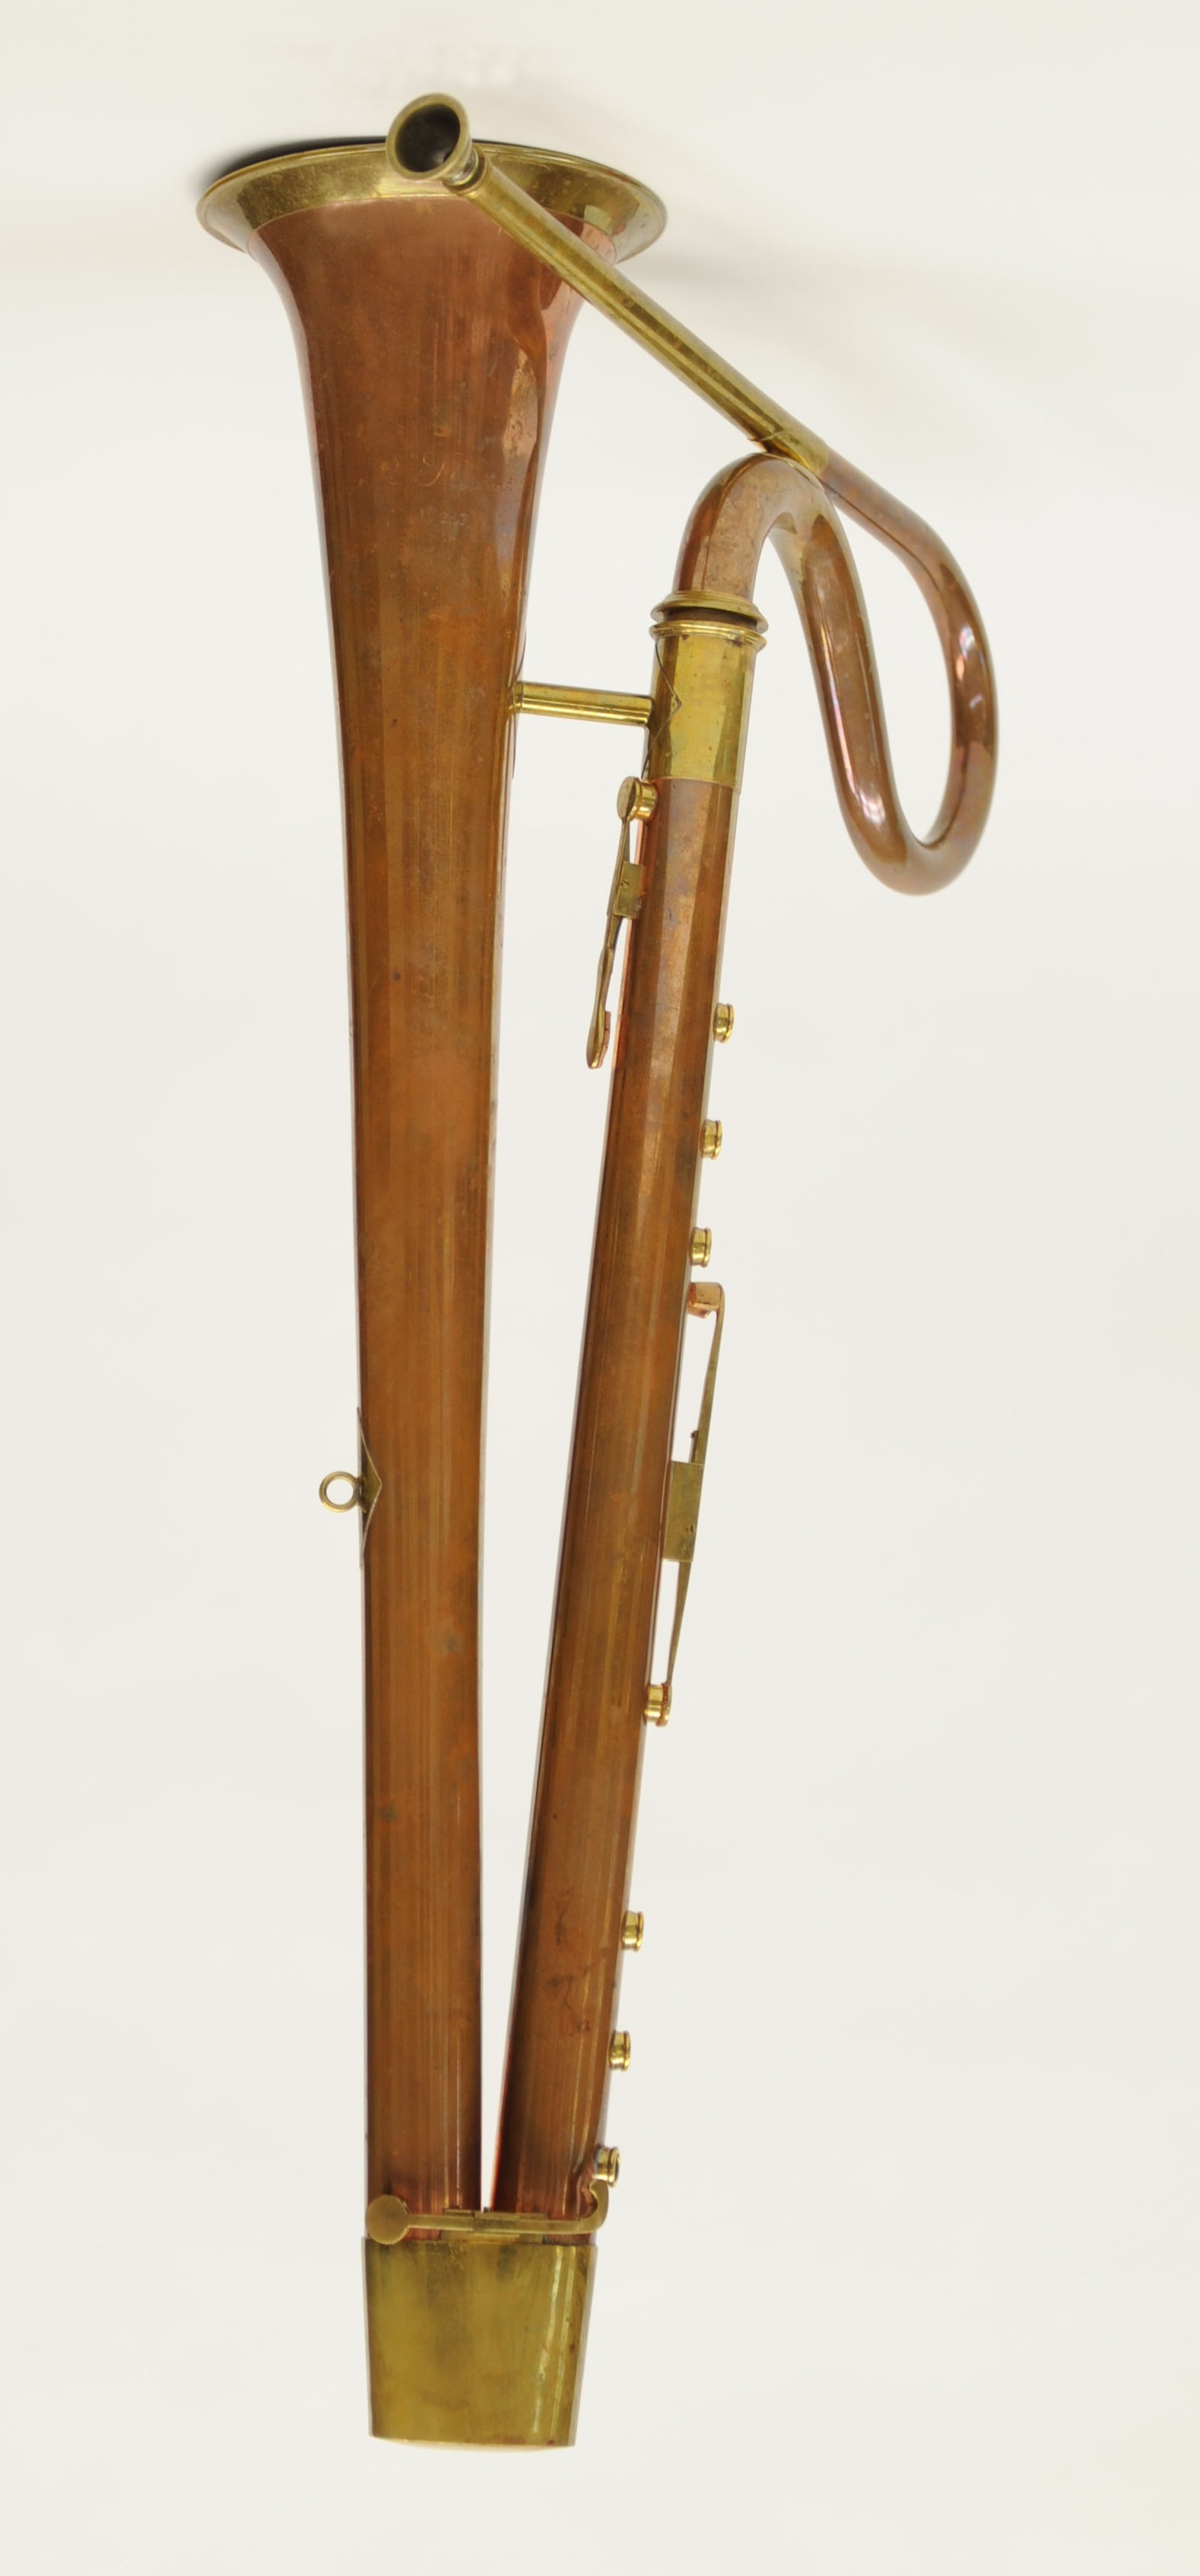 Berlioz Historical Brass : Instruments : English Bass Horn